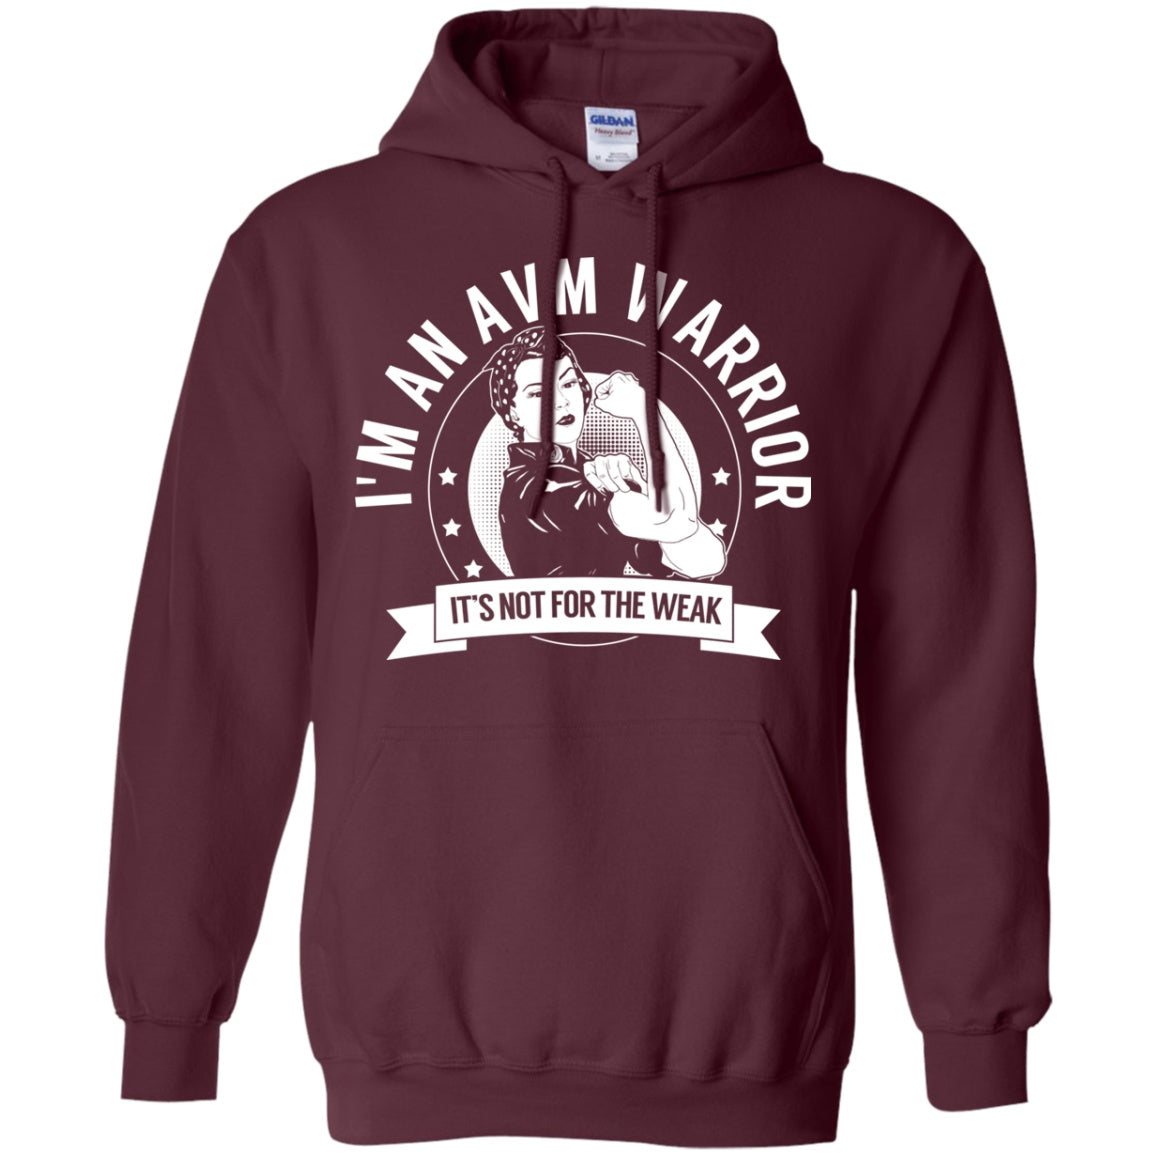 Arteriovenous Malformation - AVM Warrior NFTW Pullover Hoodie 8 oz. - The Unchargeables